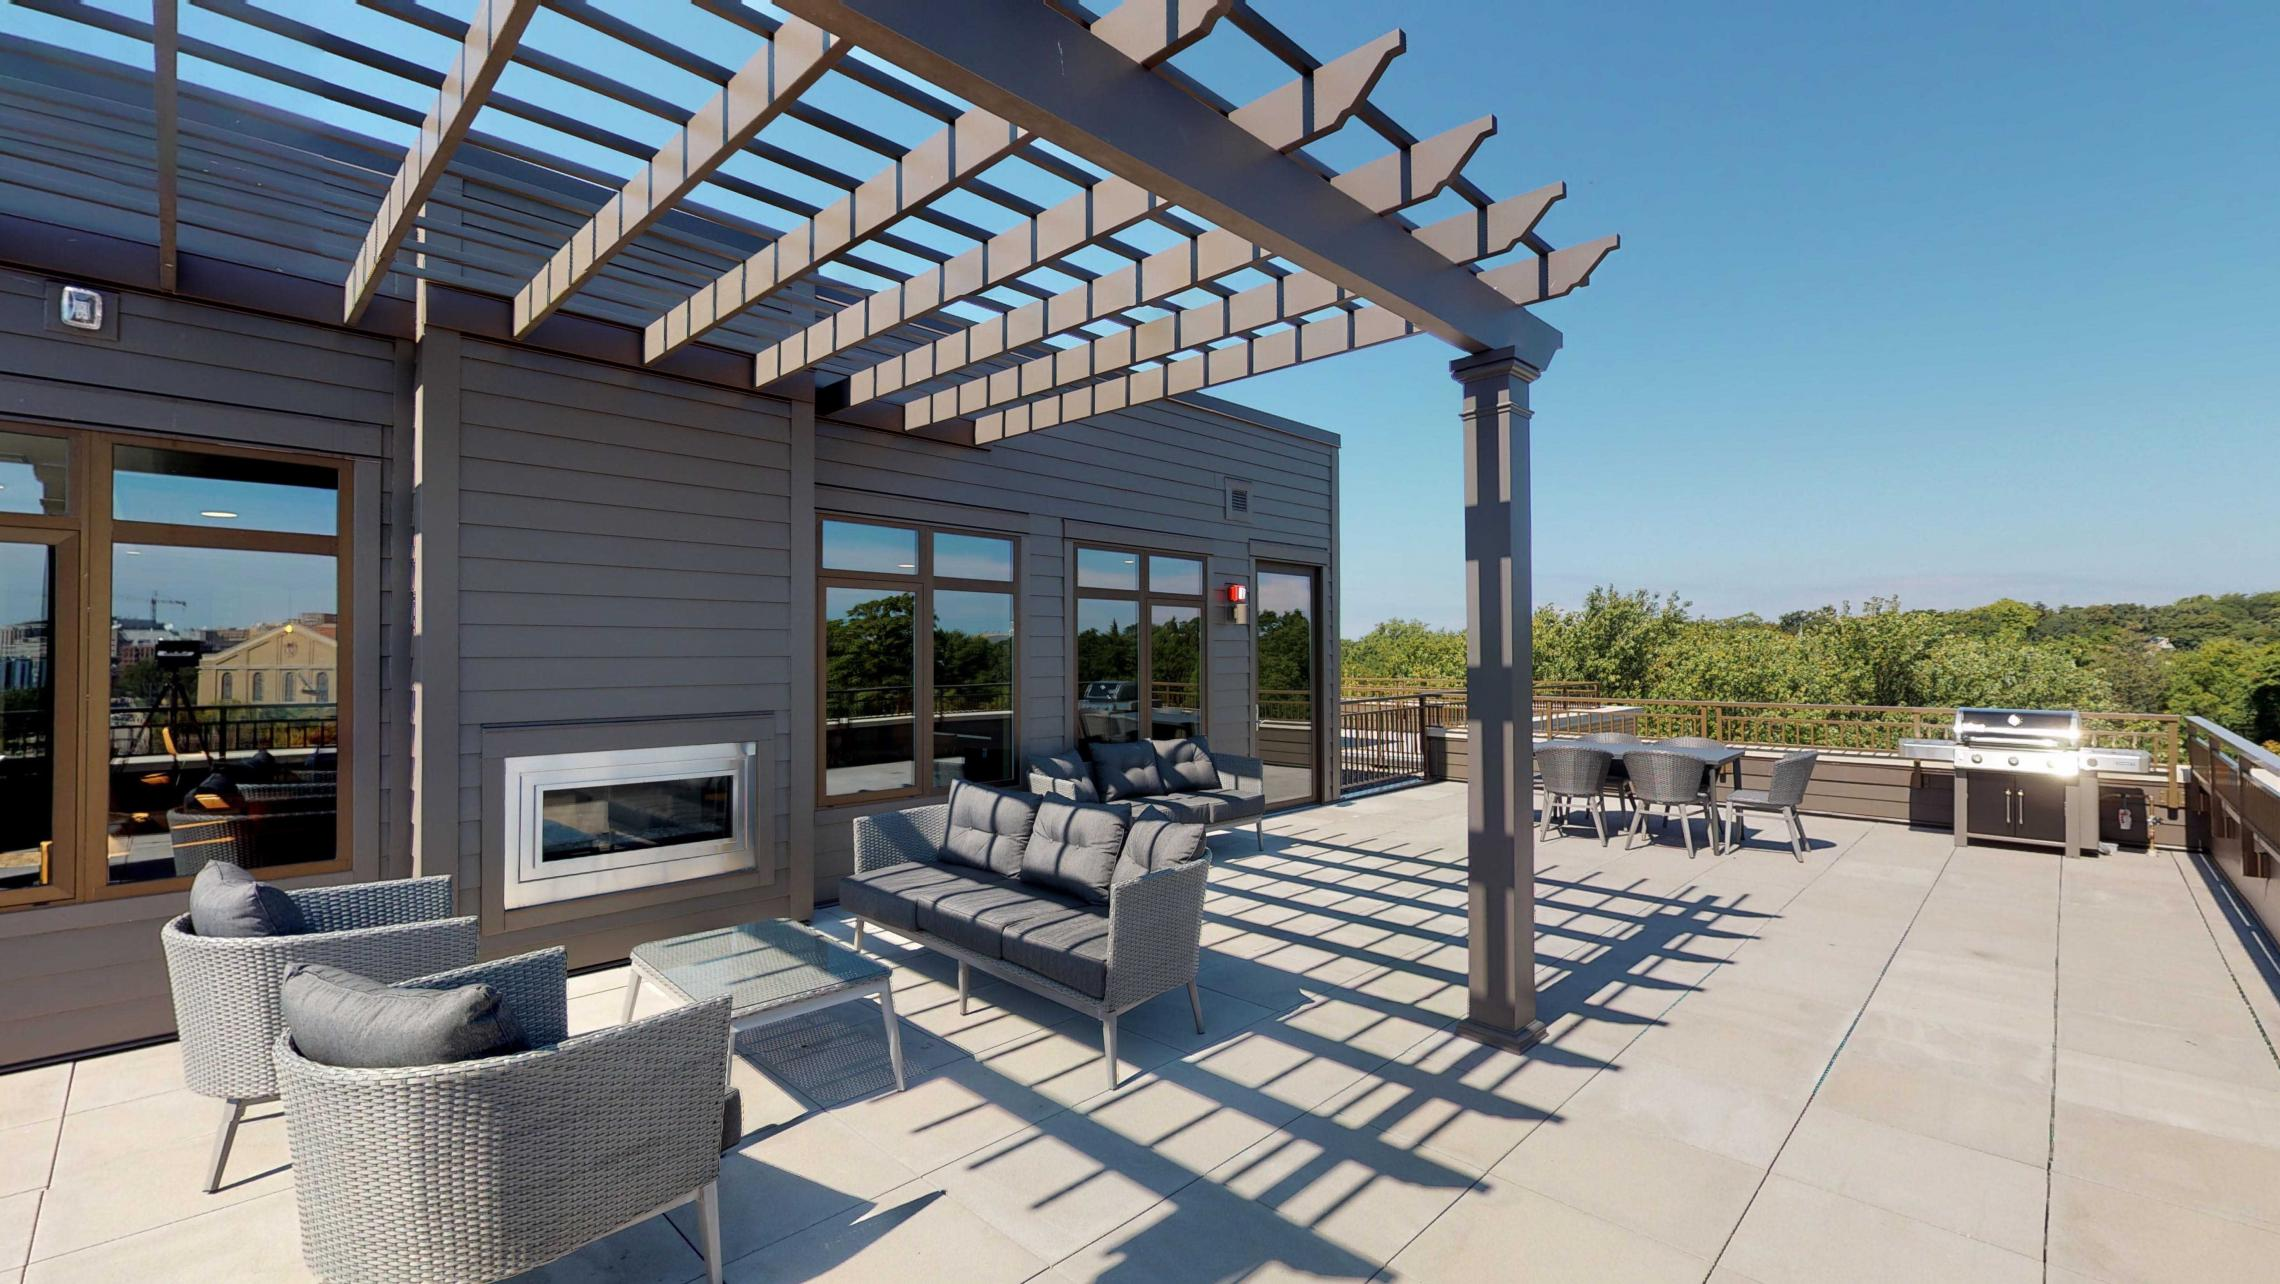 1722-Monroe-Rooftop-Terrace-Modern-Capitol View-City View-Luxury-Design-Apartments-Living-Fireplace